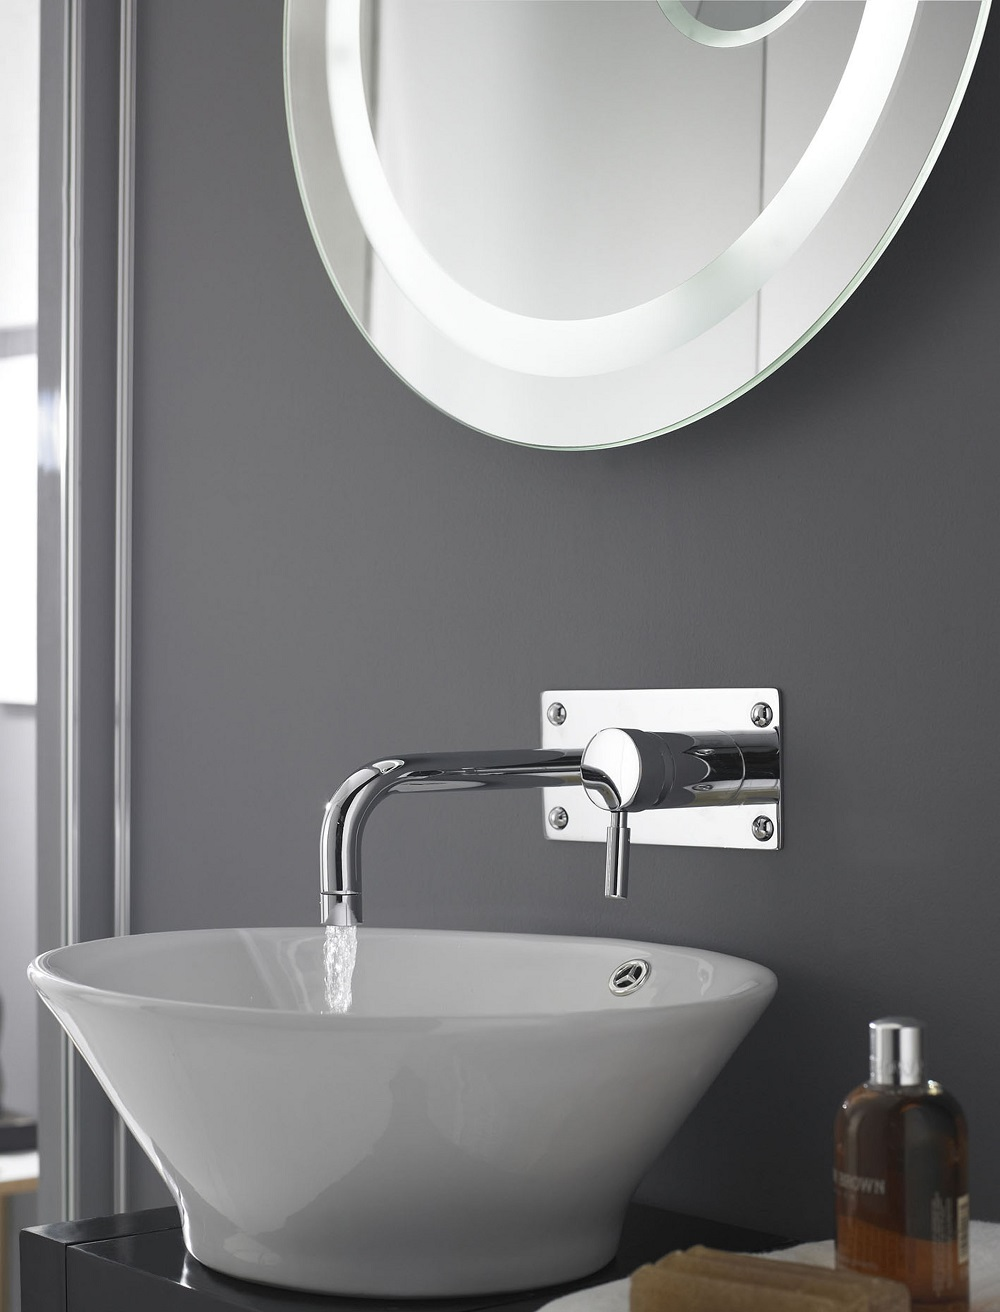 Trend wall mounted tap